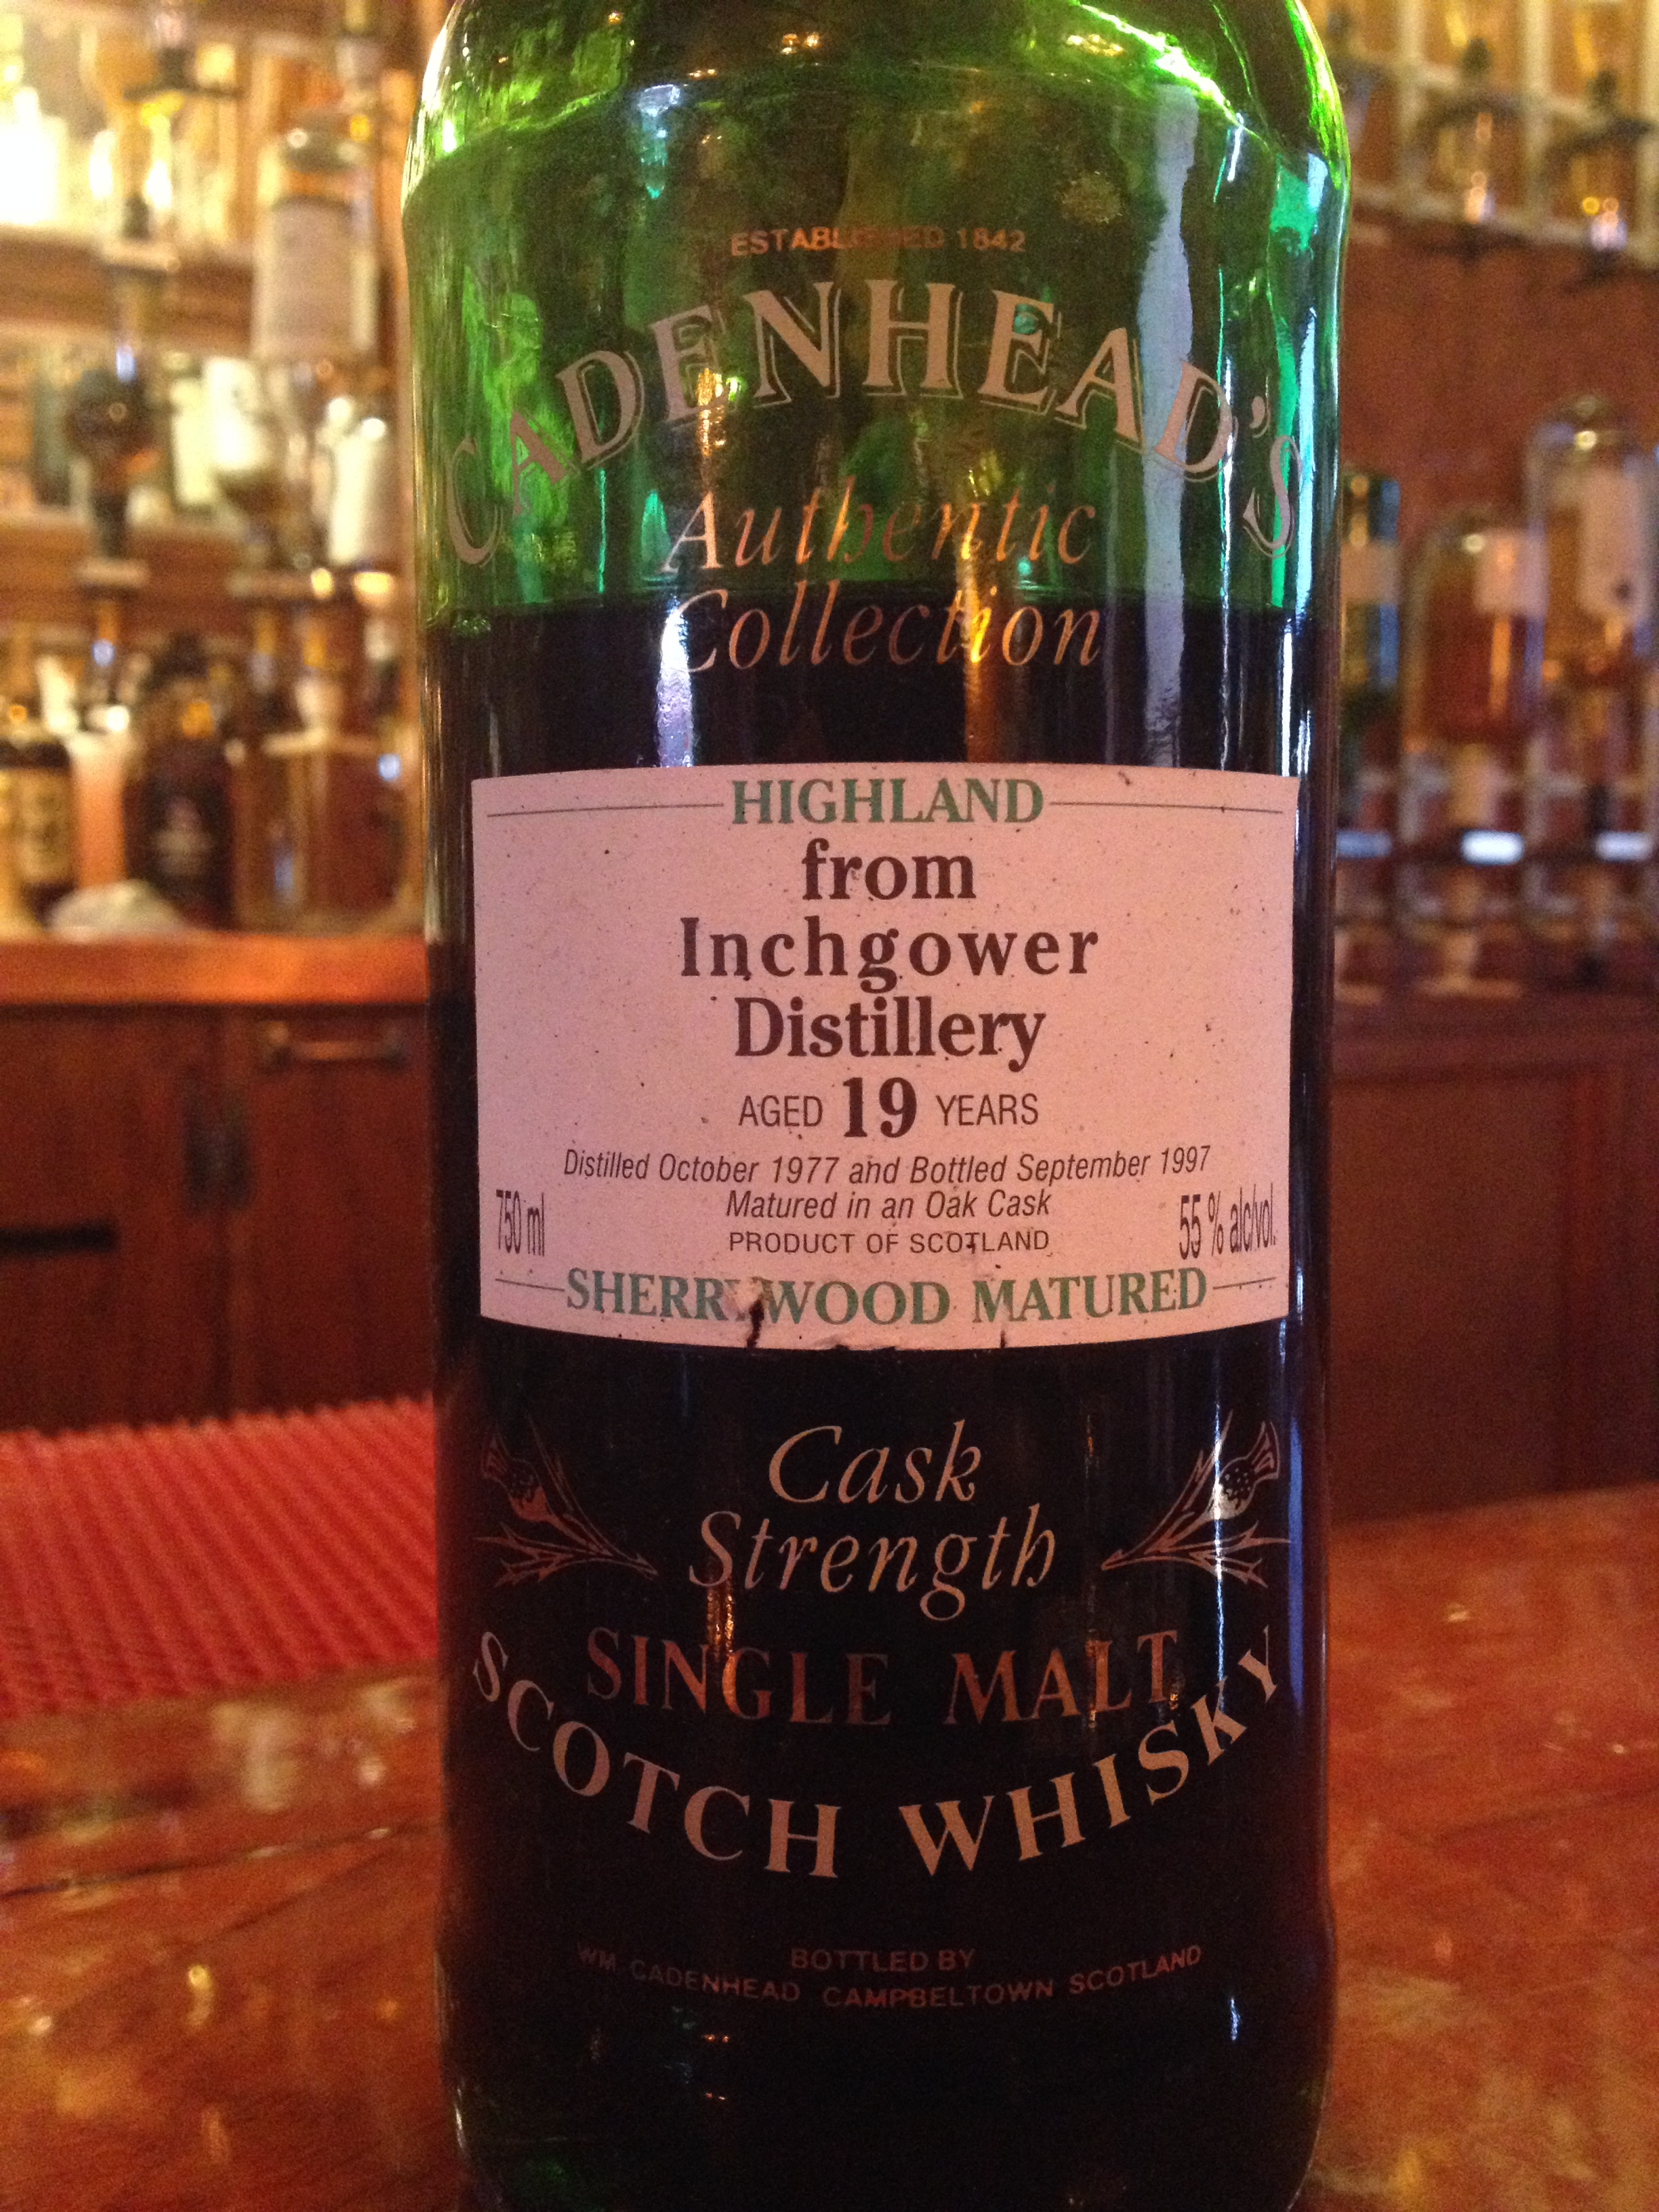 19 Year Old | 55% ABV - Distillery | Inchgower